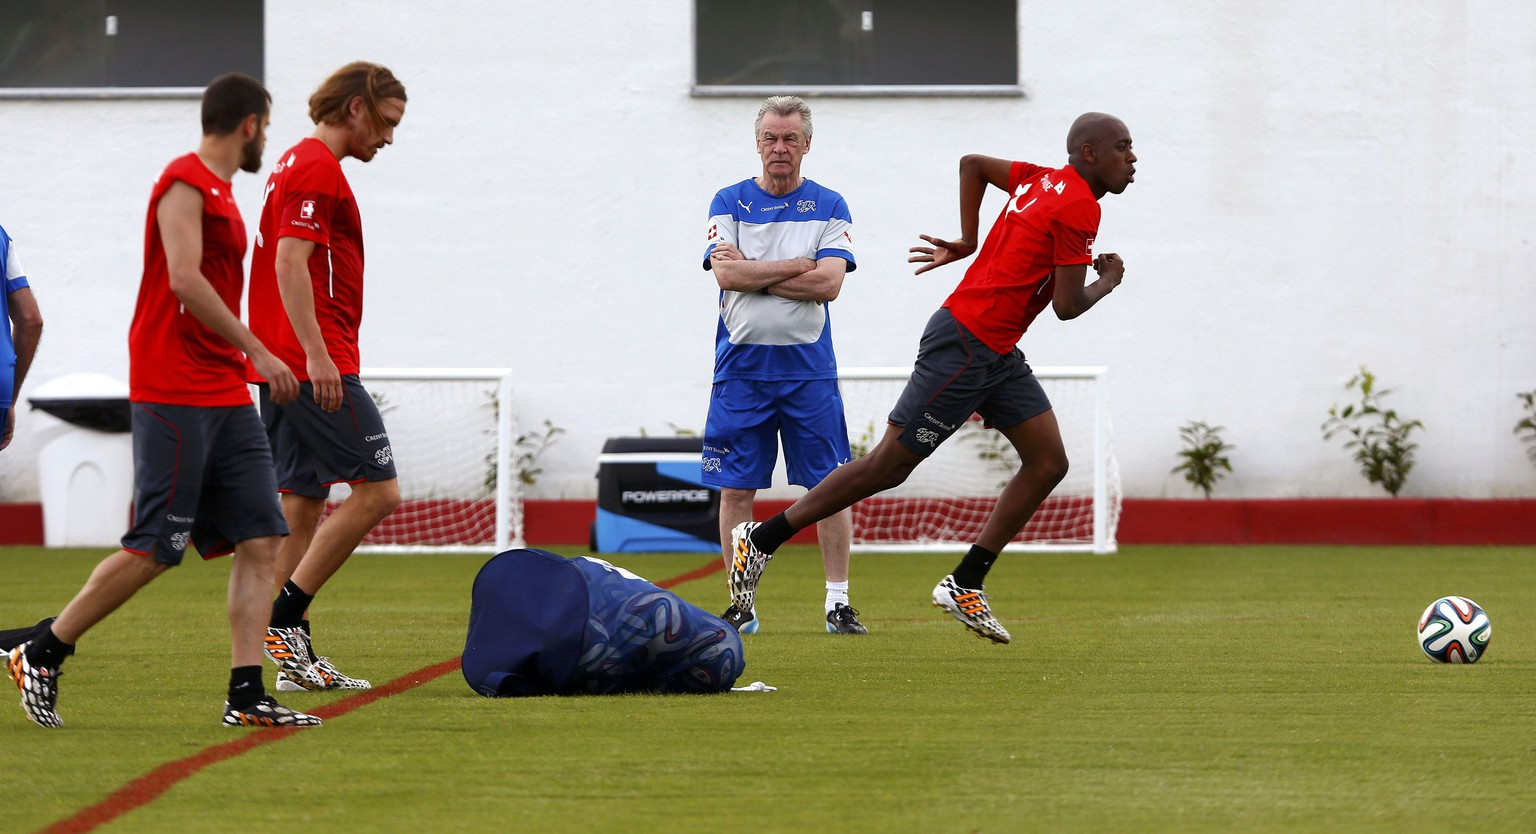 Switzerland's national soccer team coach Ottmar Hitzfeld (2nd R) watches his players during a training session at the stadium in Porto Seguro June 21, 2014. The players pictured are (L to R): Tranquillo Barnetta, Michael Lang, coach Hitzfeld and Gelson Fernandes. REUTERS/Arnd Wiegmann (BRAZIL  - Tags: SOCCER SPORT WORLD CUP)